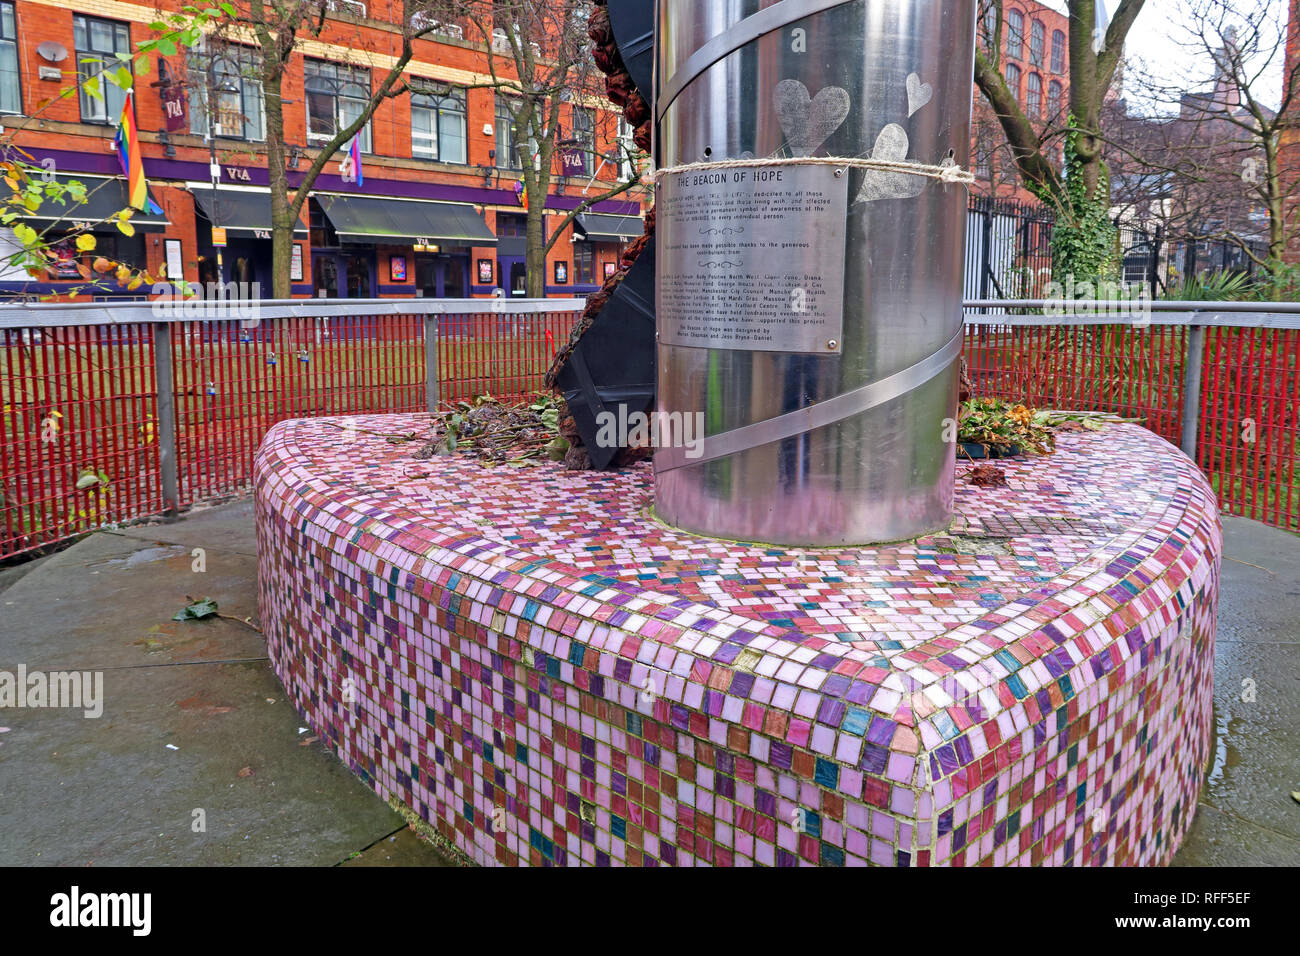 Manchester Canal street Beacon of Hope - Stock Image